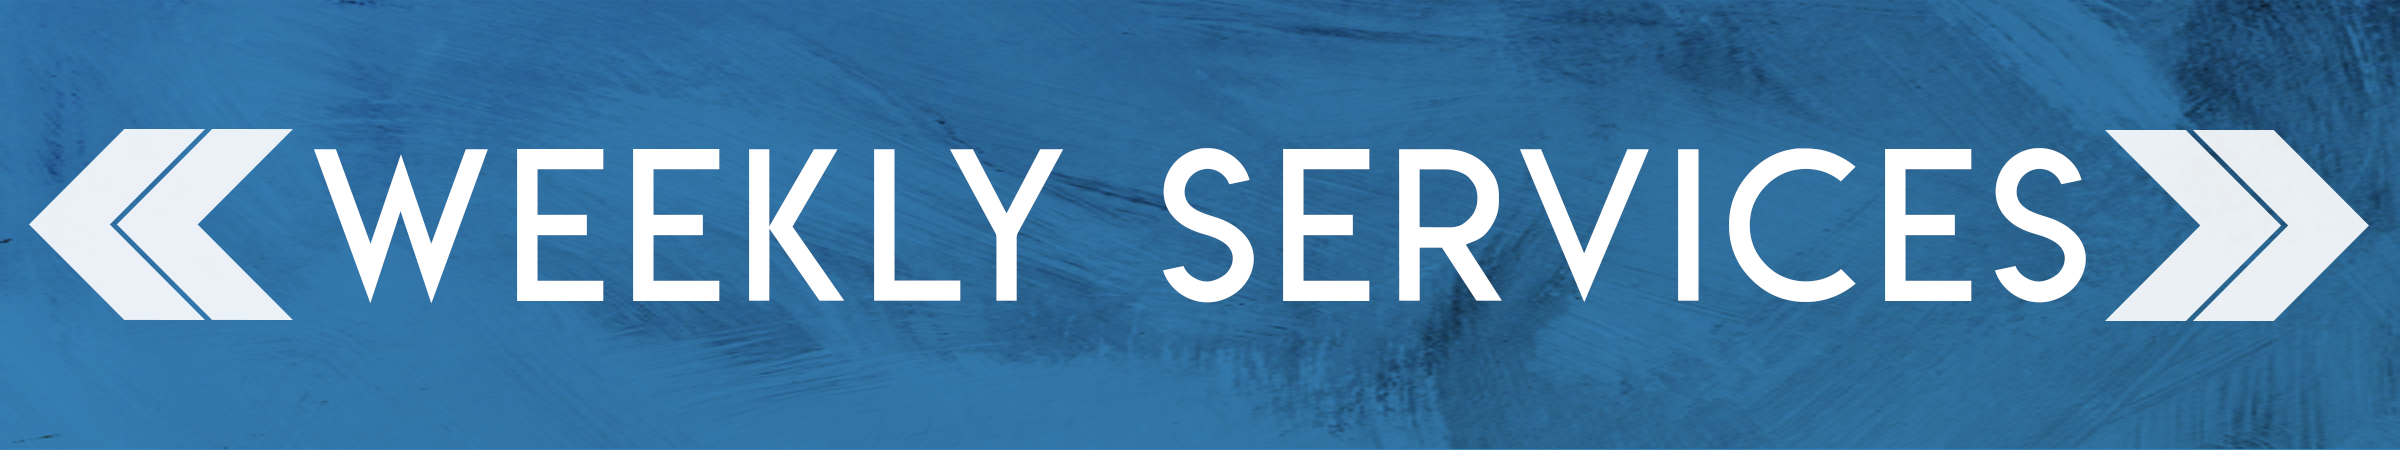 Wednesday Service Banner Large.png